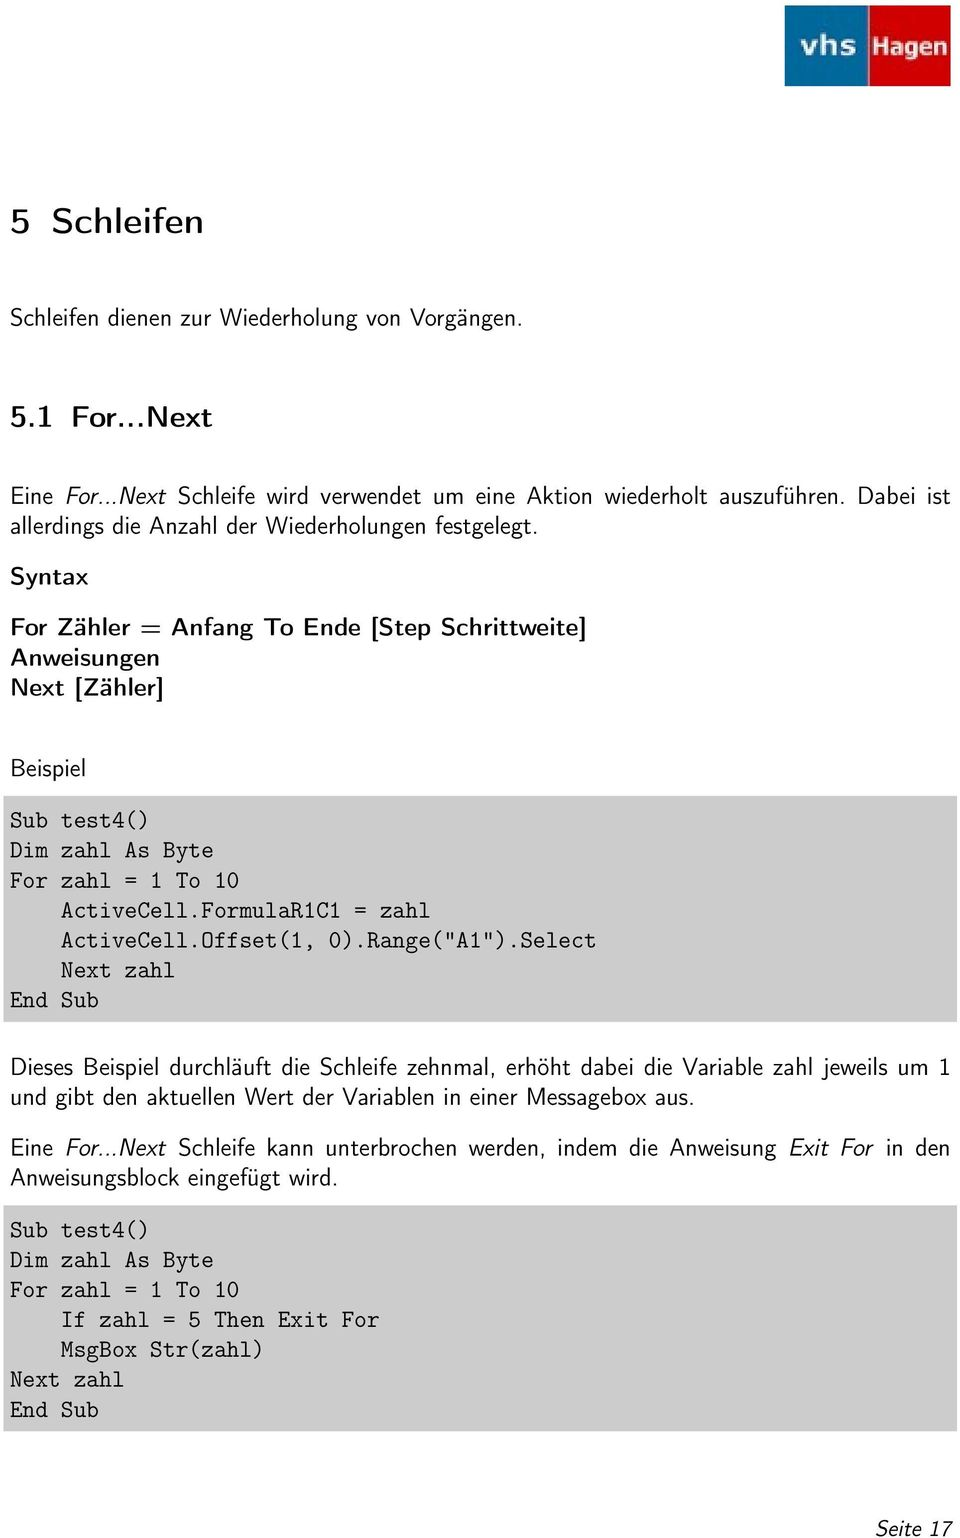 Syntax For Zähler = Anfang To Ende [Step Schrittweite] Anweisungen Next [Zähler] Beispiel Sub test4() Dim zahl As Byte For zahl = 1 To 10 ActiveCell.FormulaR1C1 = zahl ActiveCell.Offset(1, 0).